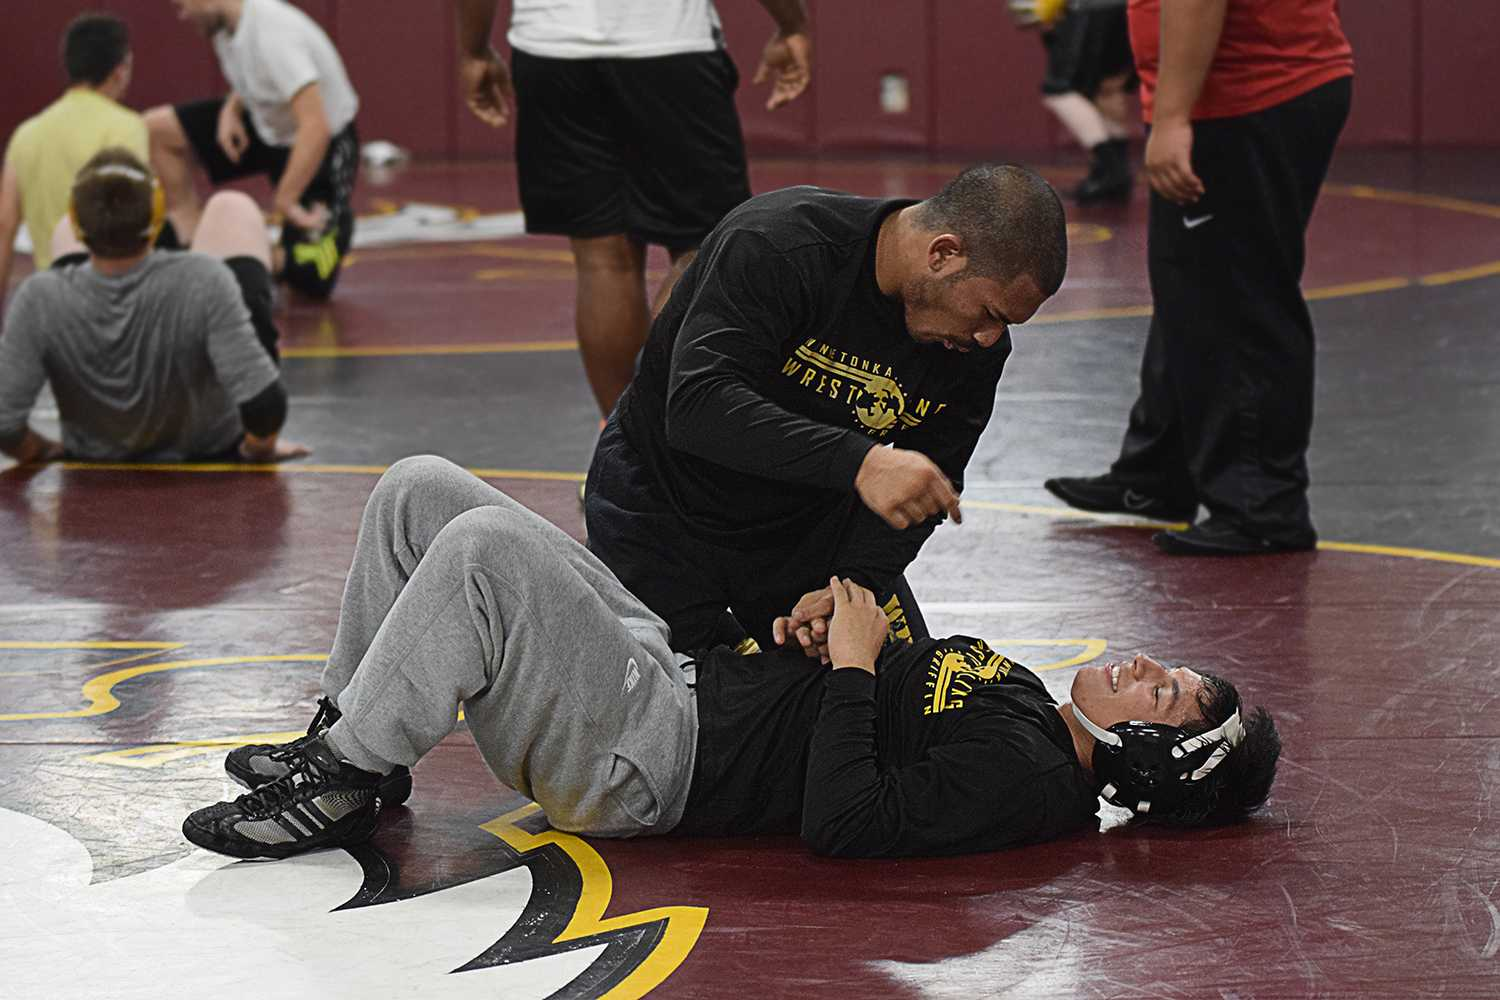 Senior Michael Aquino gives some advice to his younger brother, freshman Jordan Aquino during practice after being able to overpower Jordan in a short amount of time.